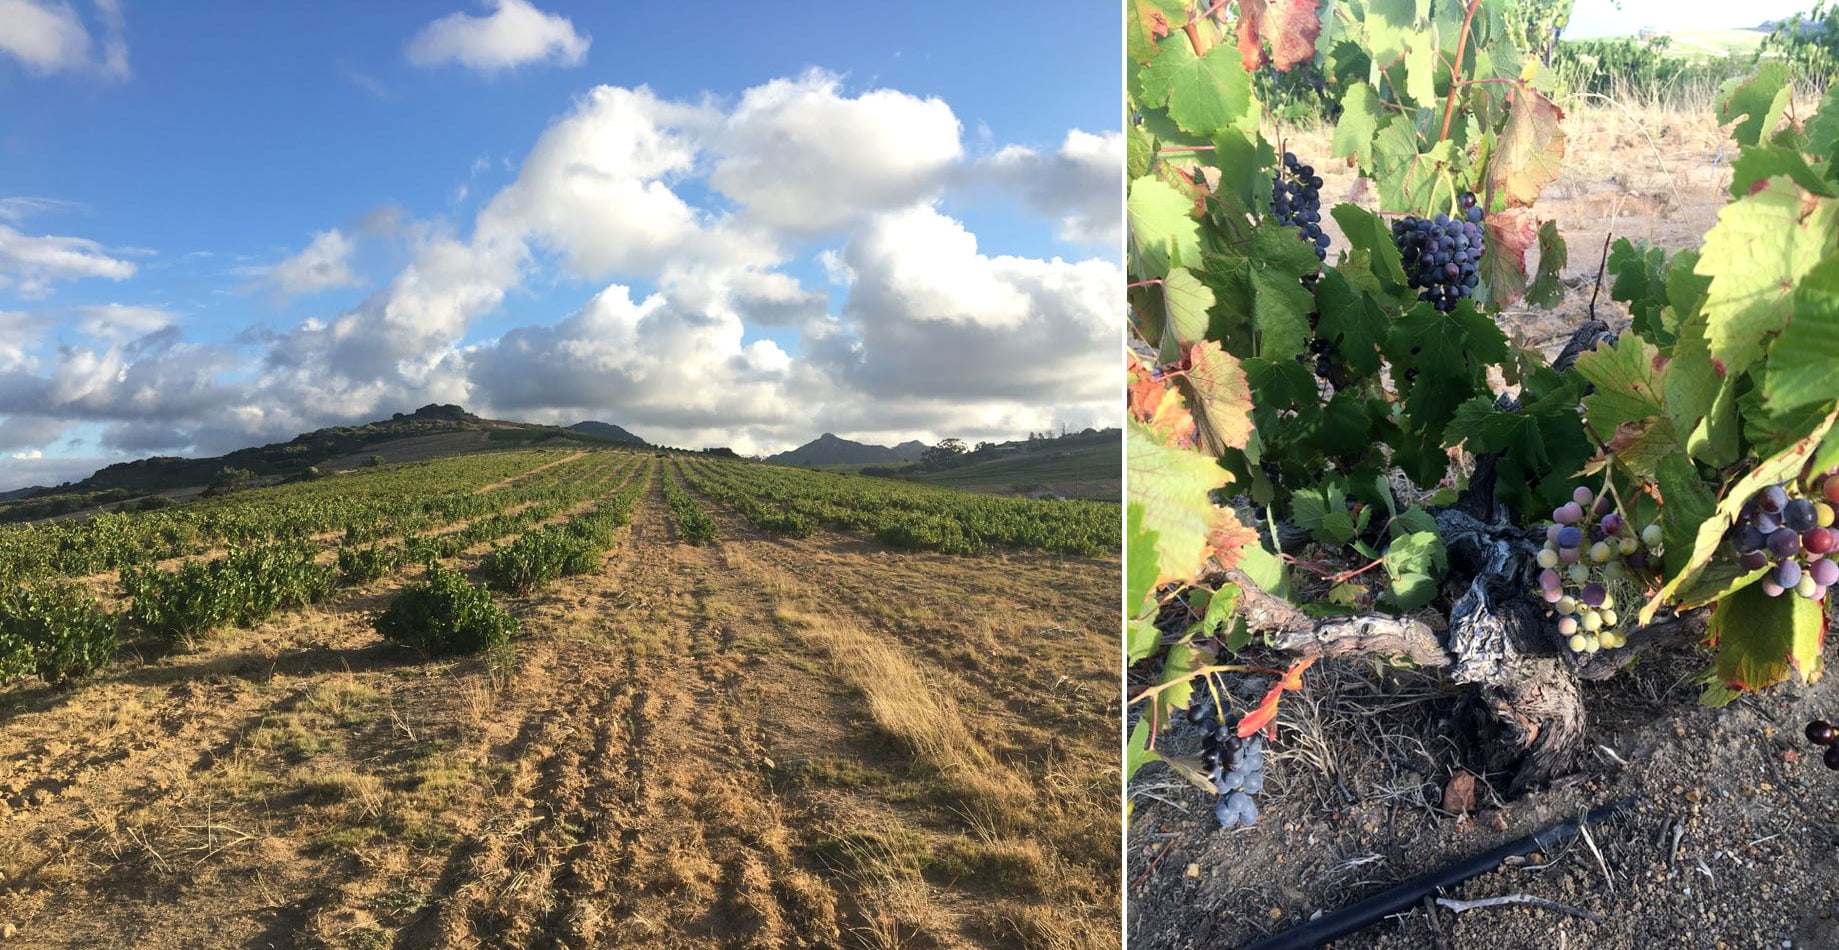 This east-facing vineyard at Scholes Farm in Paardeberg, with sandstone soil, was planted in 1967 with Pinotage and some Tinta Barroca. Pinotage is one of the earliest varieties to harvest, even before Chenin Blanc.